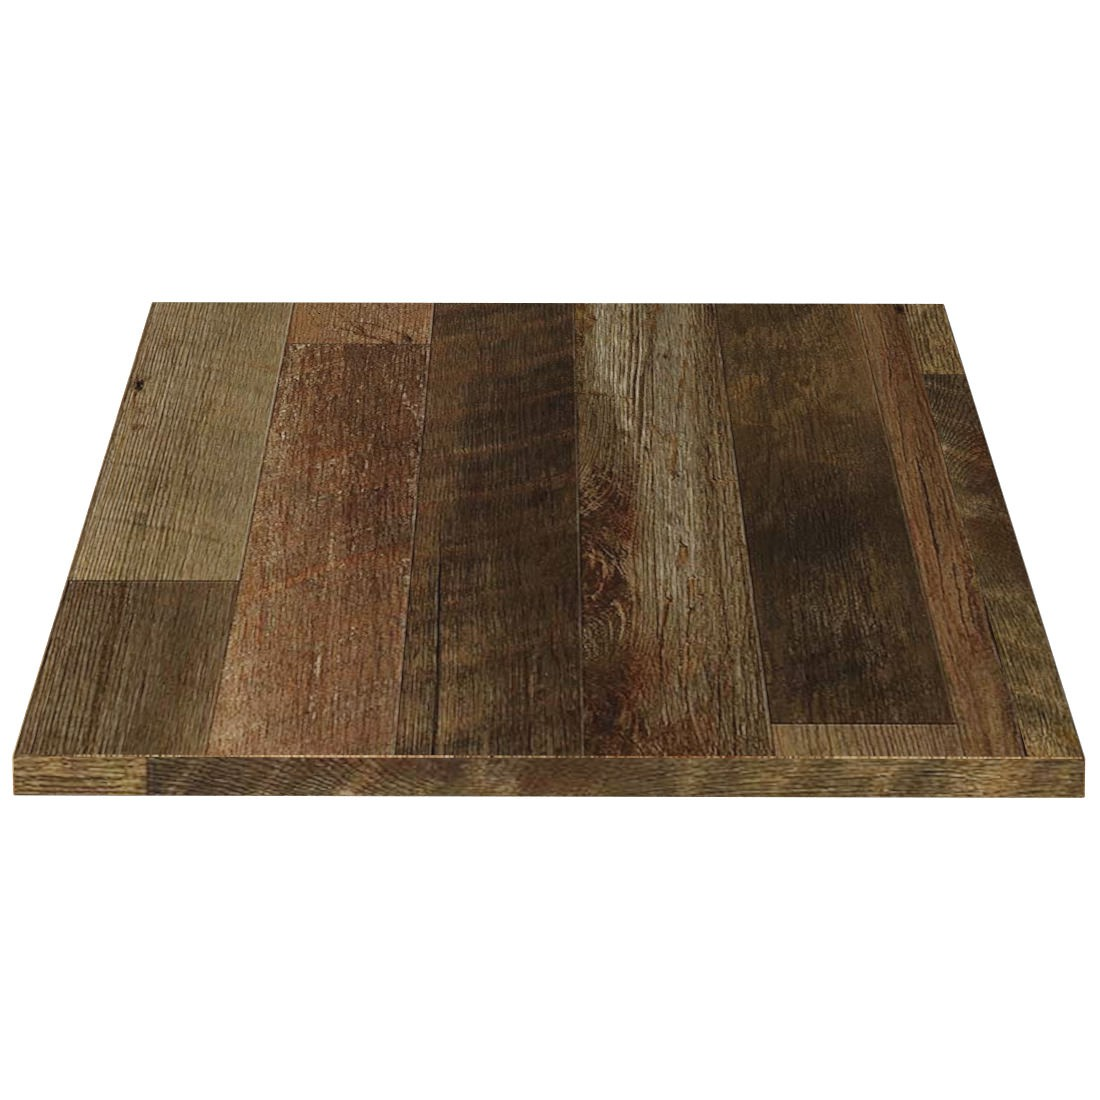 Reclaimed Look Laminate Table Tops